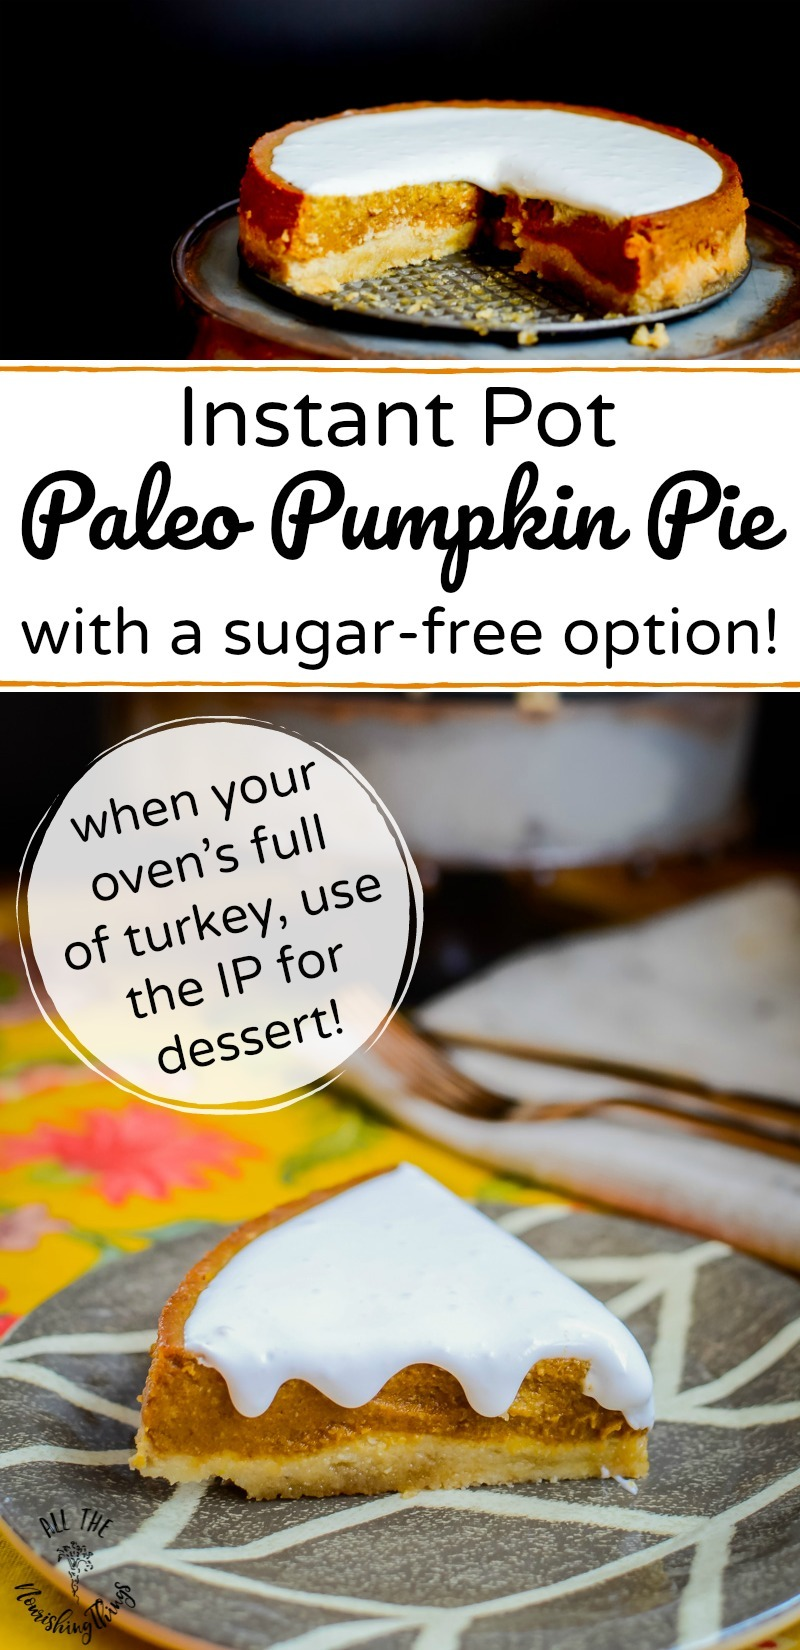 instant pot paleo pumpkin pie with text overlay